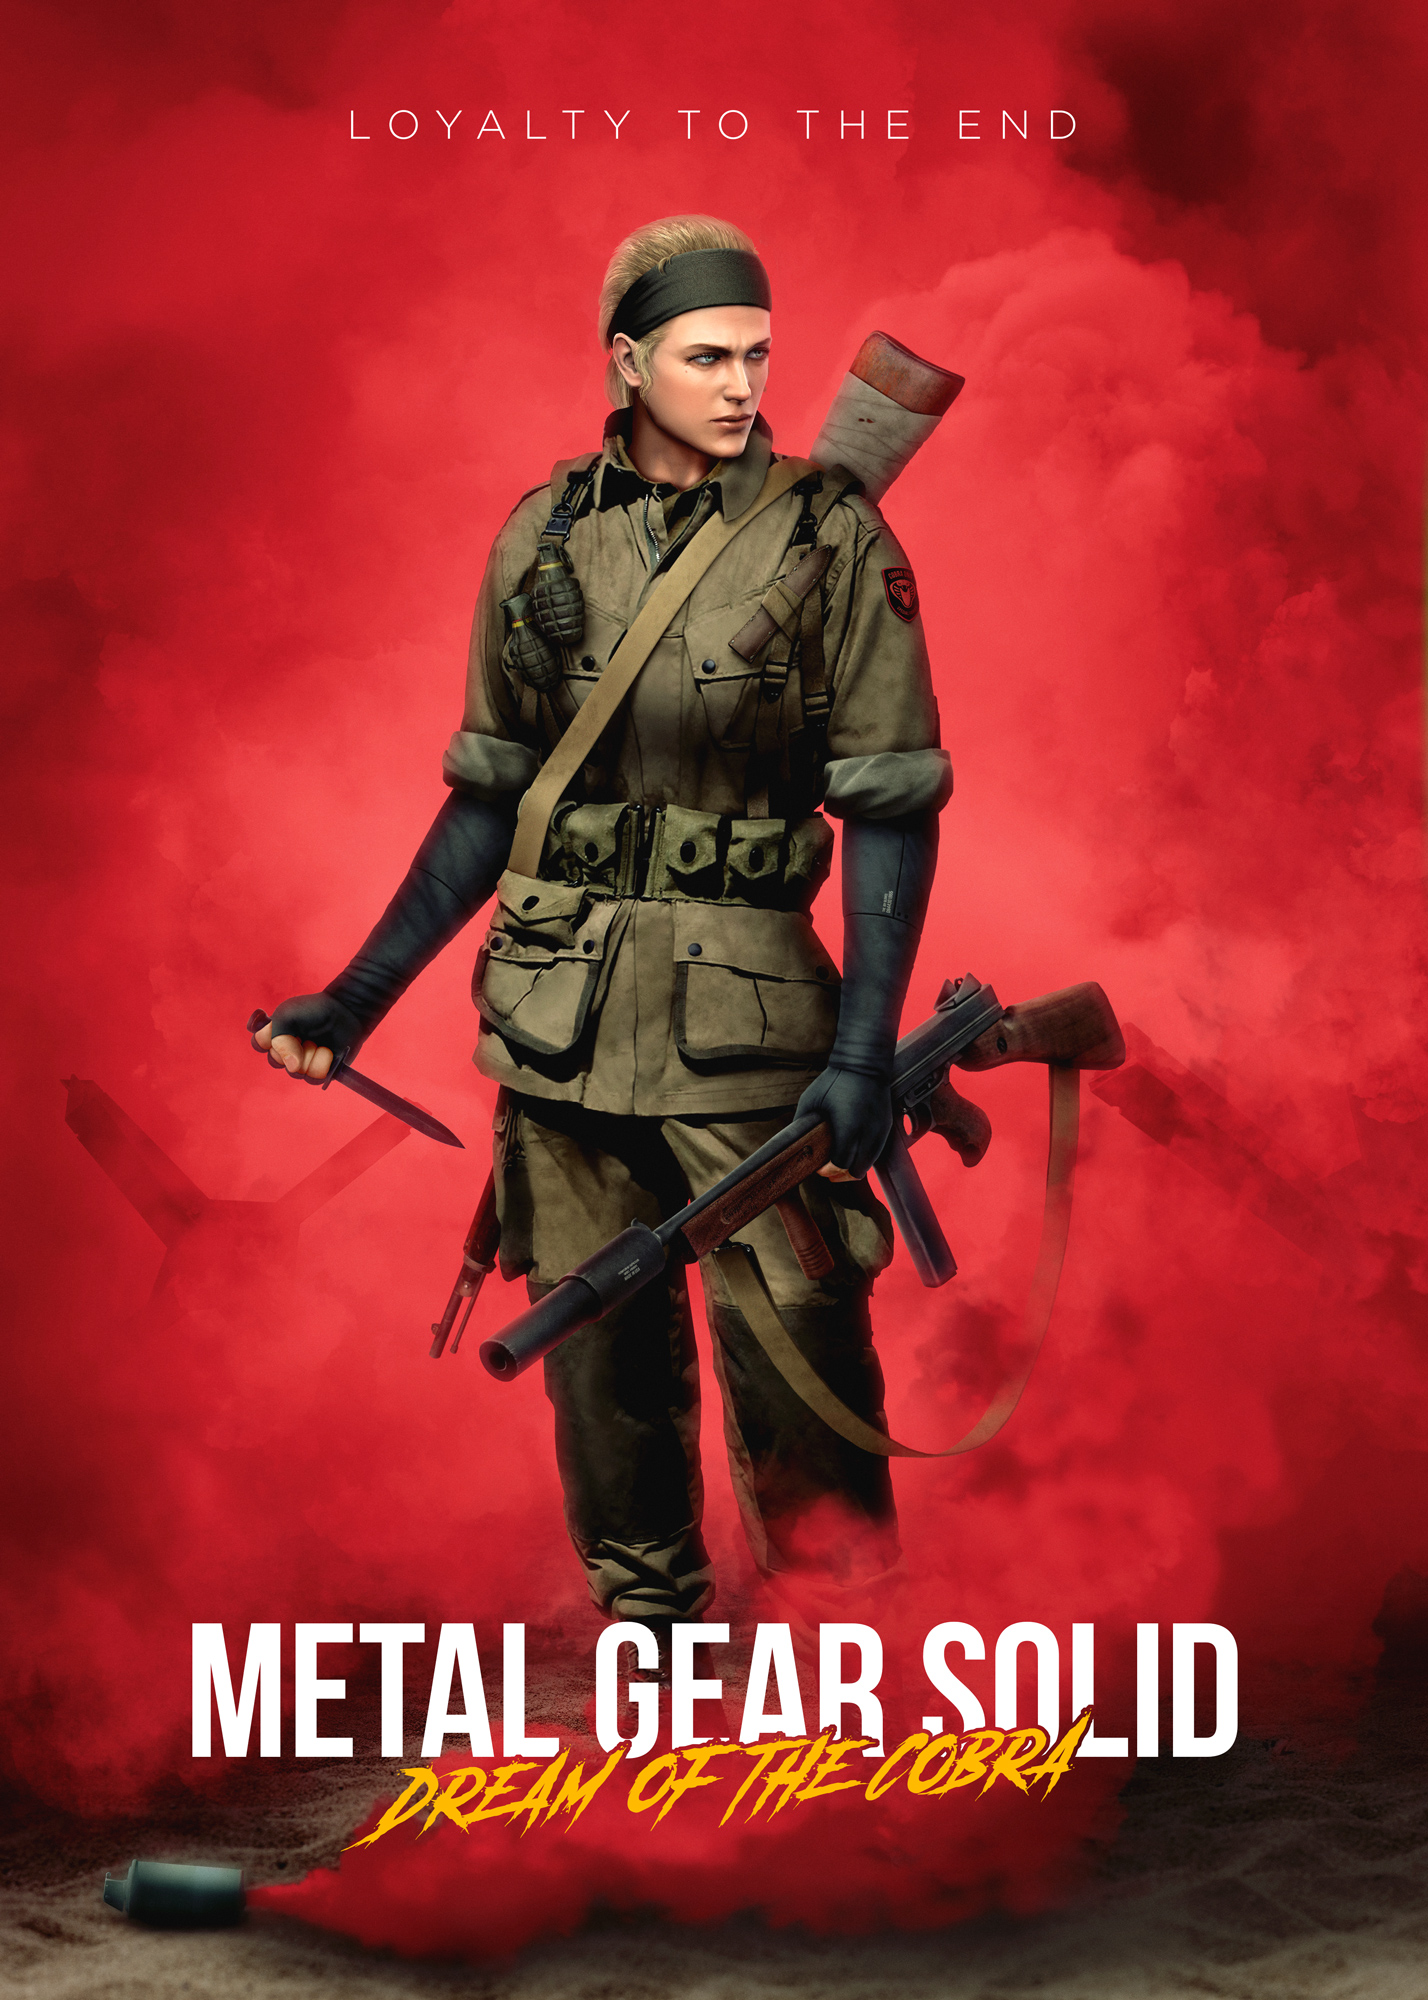 Fake MGS5 WW2 game poster.